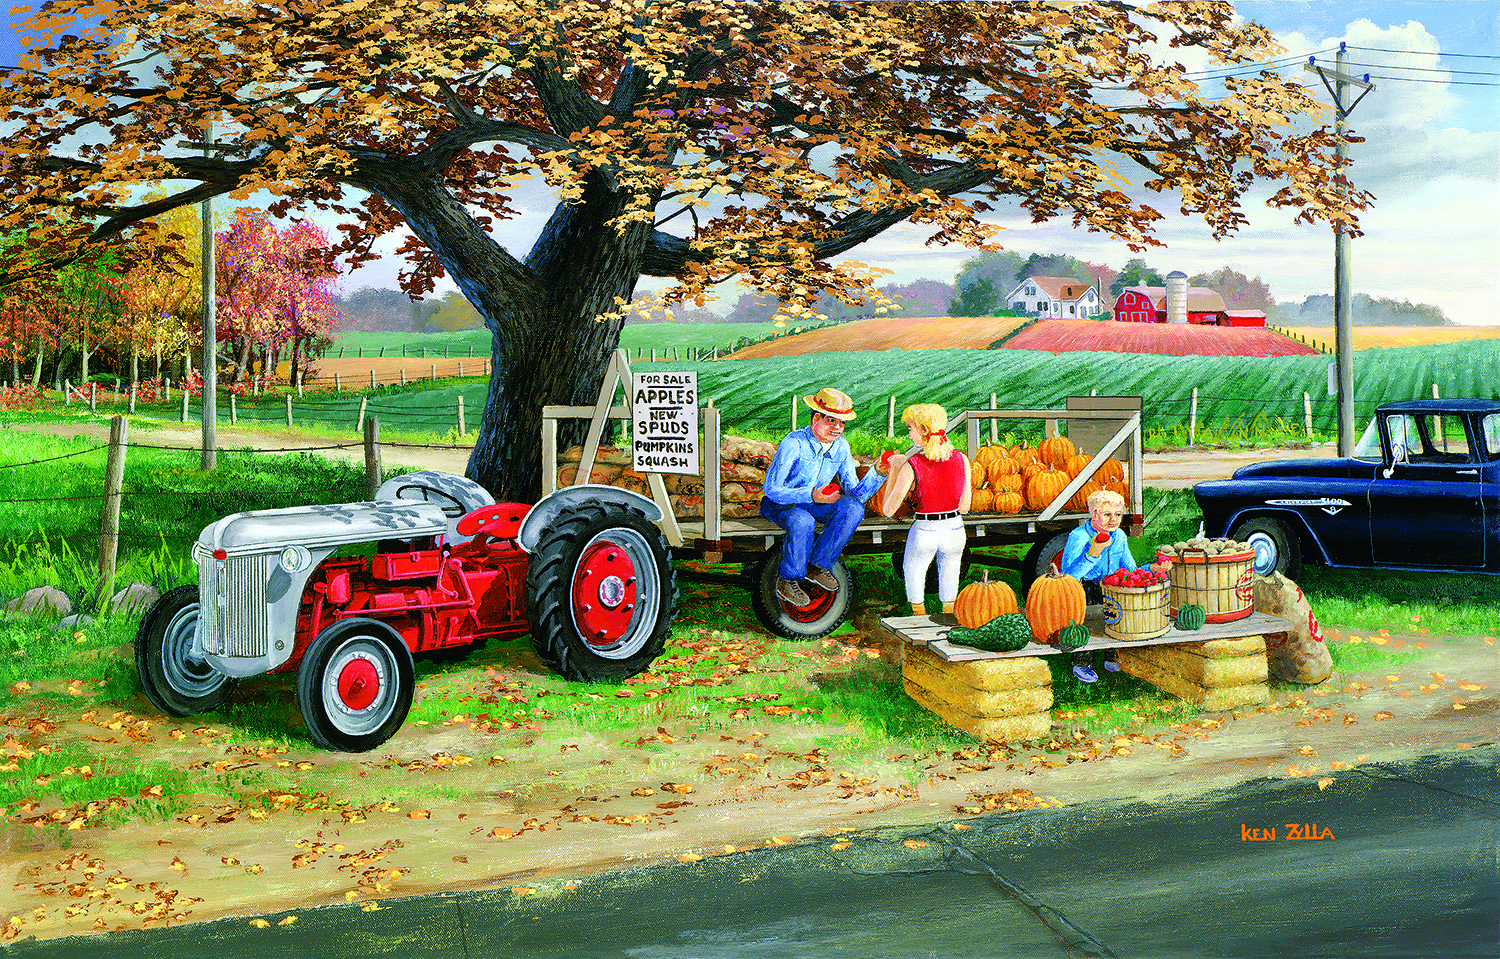 Harvest Time 1000 Pc Jigsaw Puzzle by SunsOut Inc.